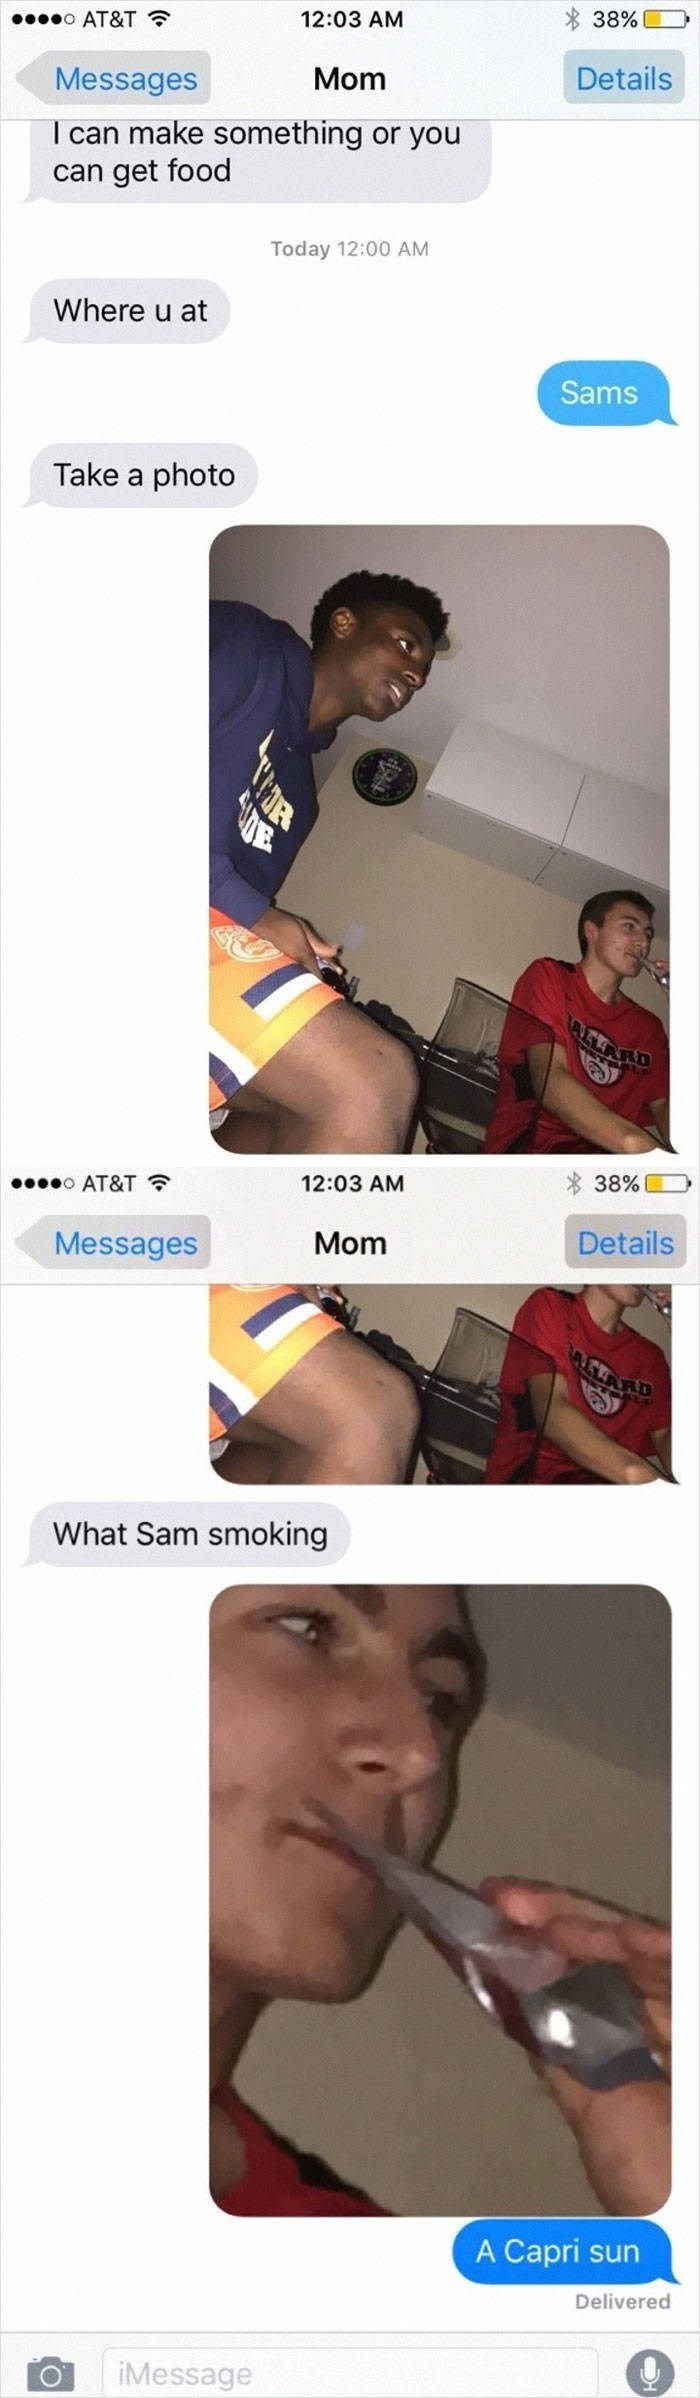 Selfie - 38% 12:03 AM oAT&T Details Mom Messages I can make something or you can get food Today 12:00 AM Where u at Sams Take a photo ALARD 38% 12:03 AM o AT&T Details Mom Messages ATLARD What Sam smoking A Capri sun Delivered iMessage